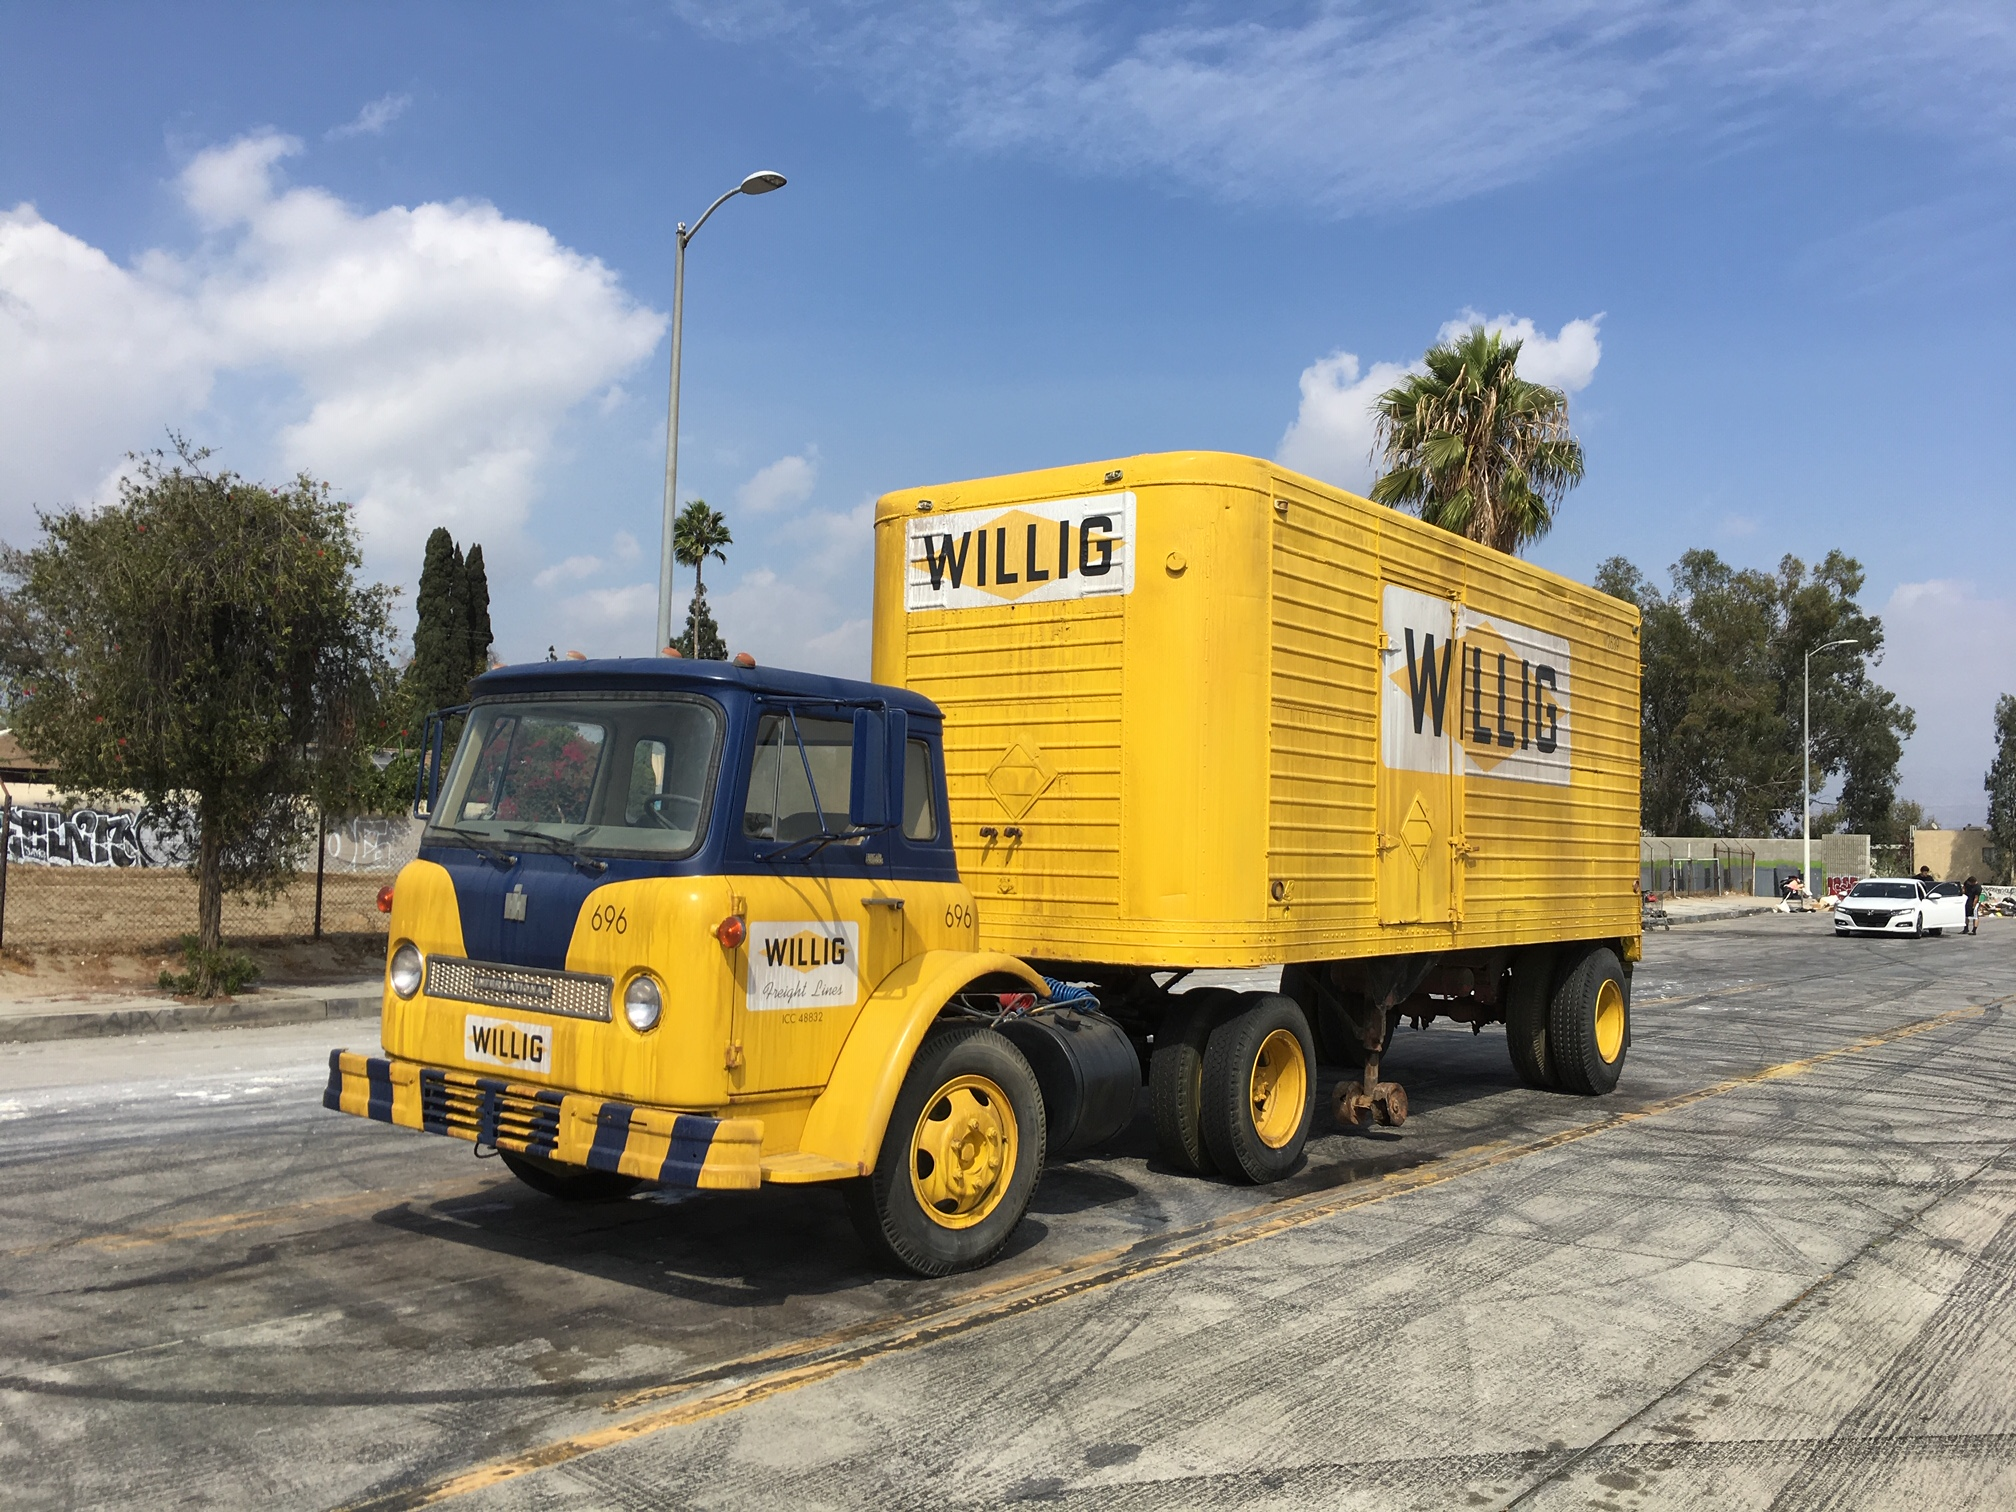 Willig Movie Truck Prop